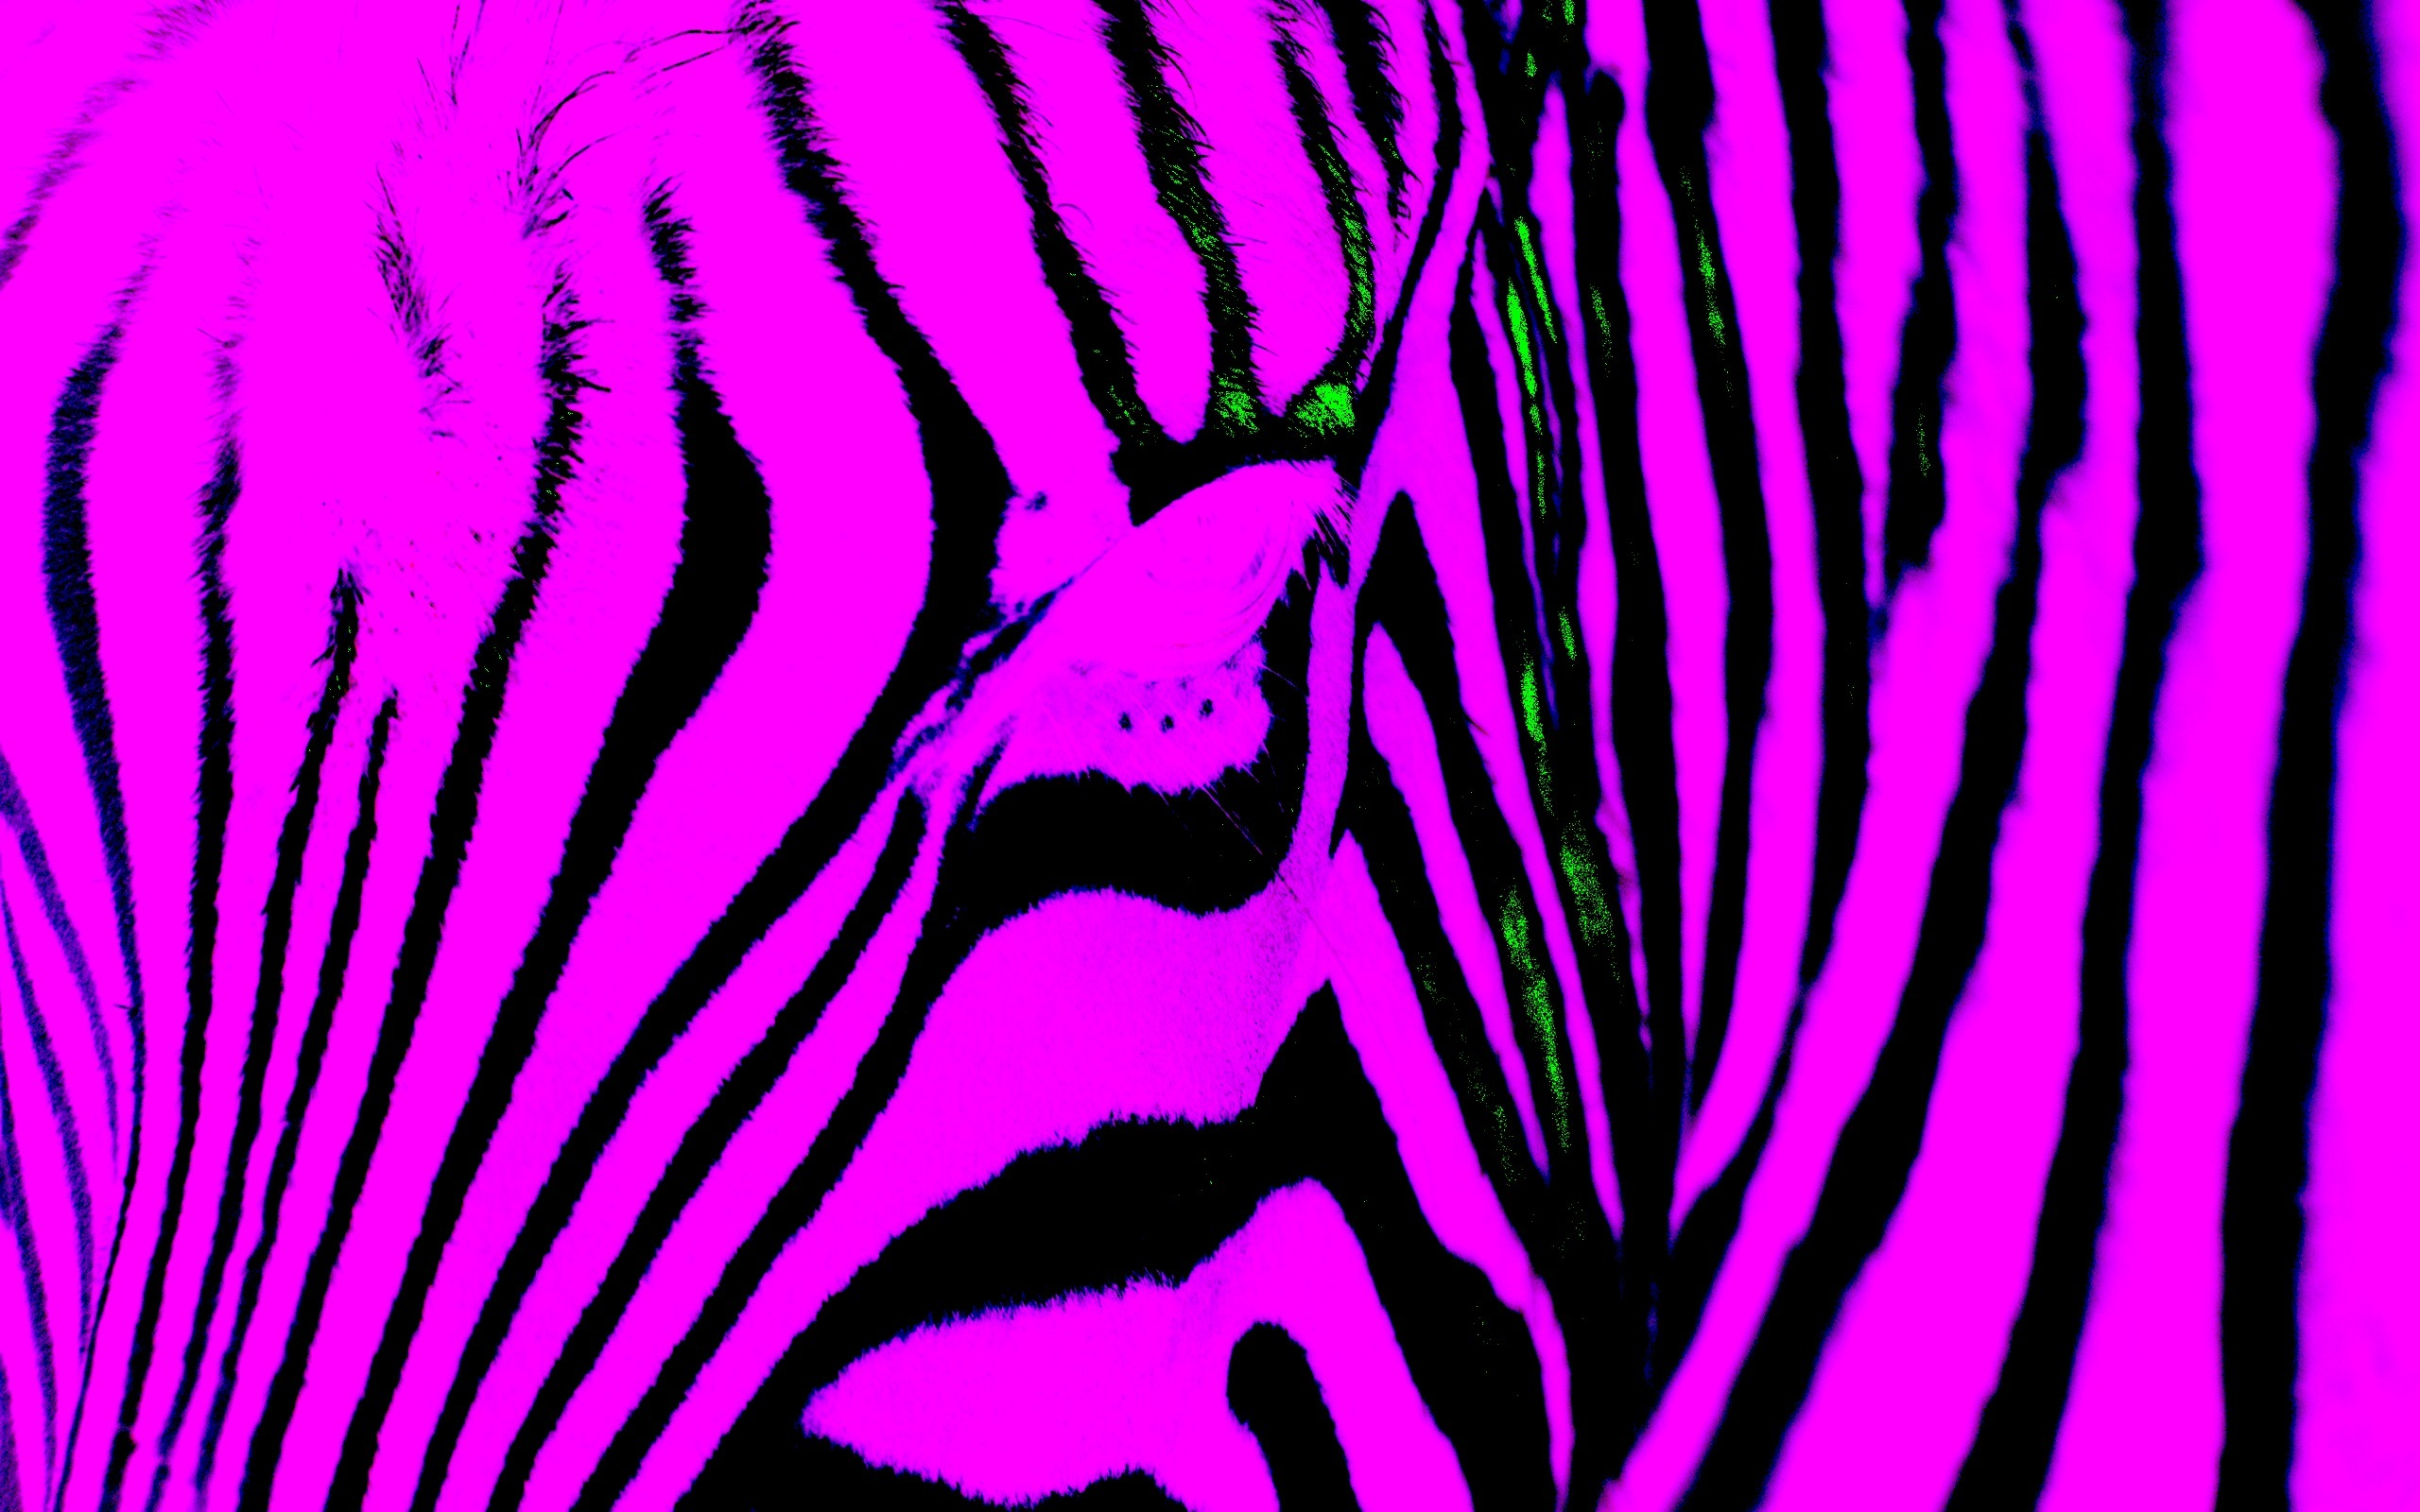 blue zebra wallpaper wallpapersafari